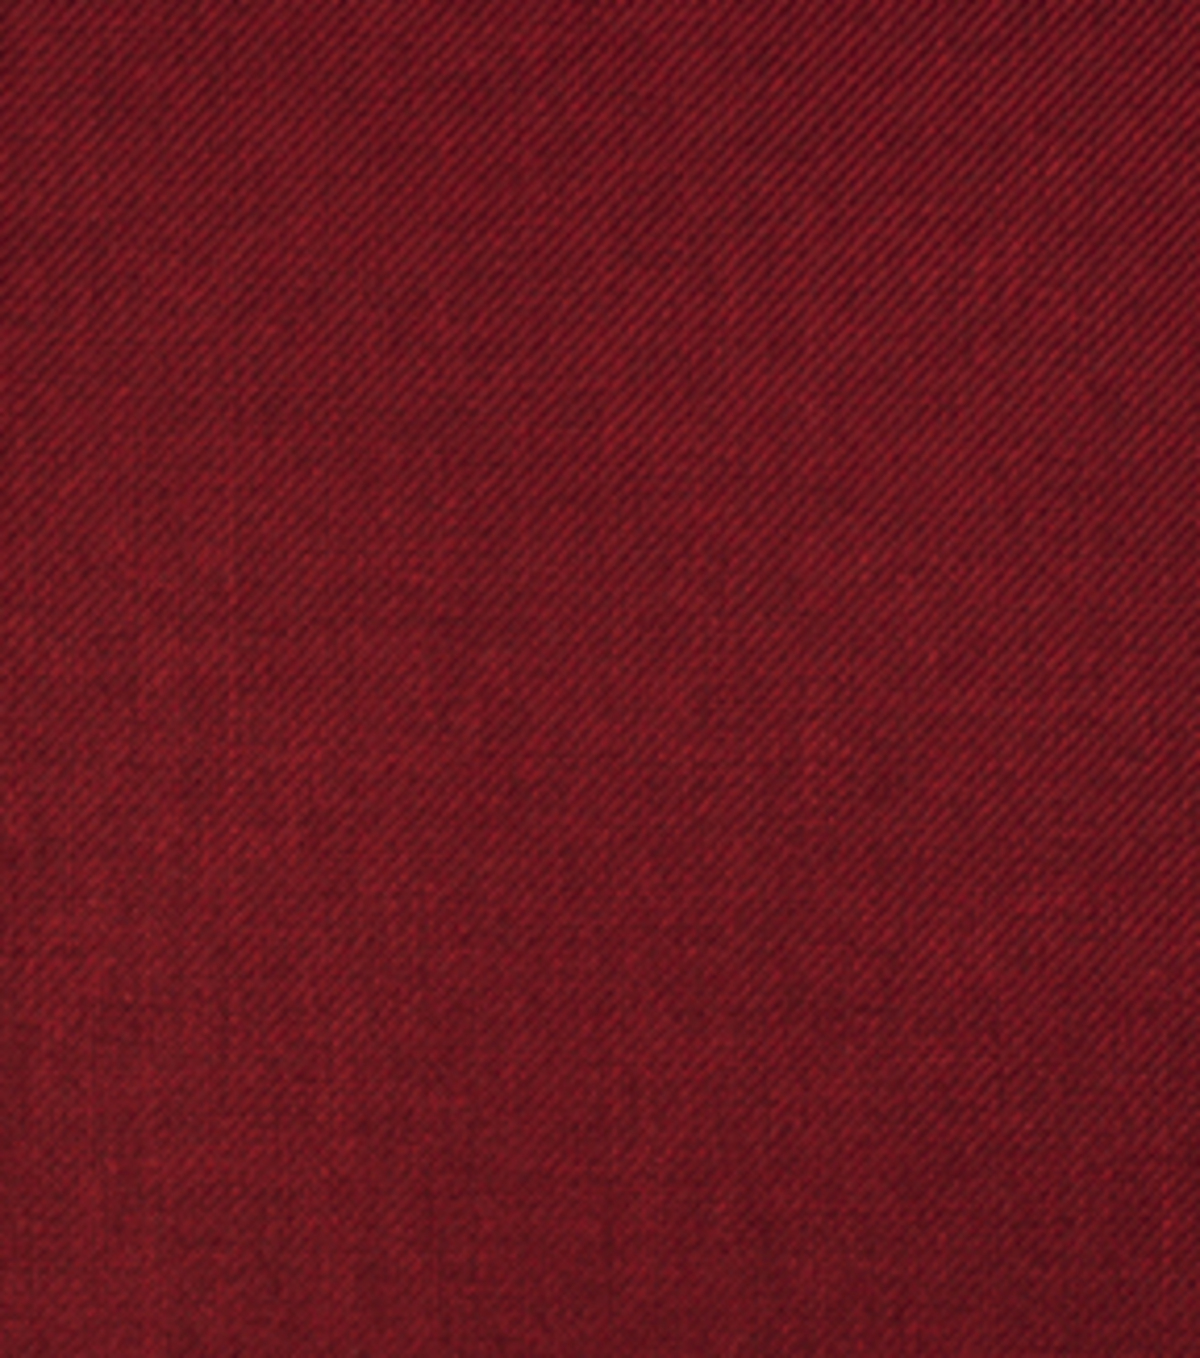 Home Decor 8\u0022x8\u0022 Fabric Swatch-Eaton Square Heston Cardinal